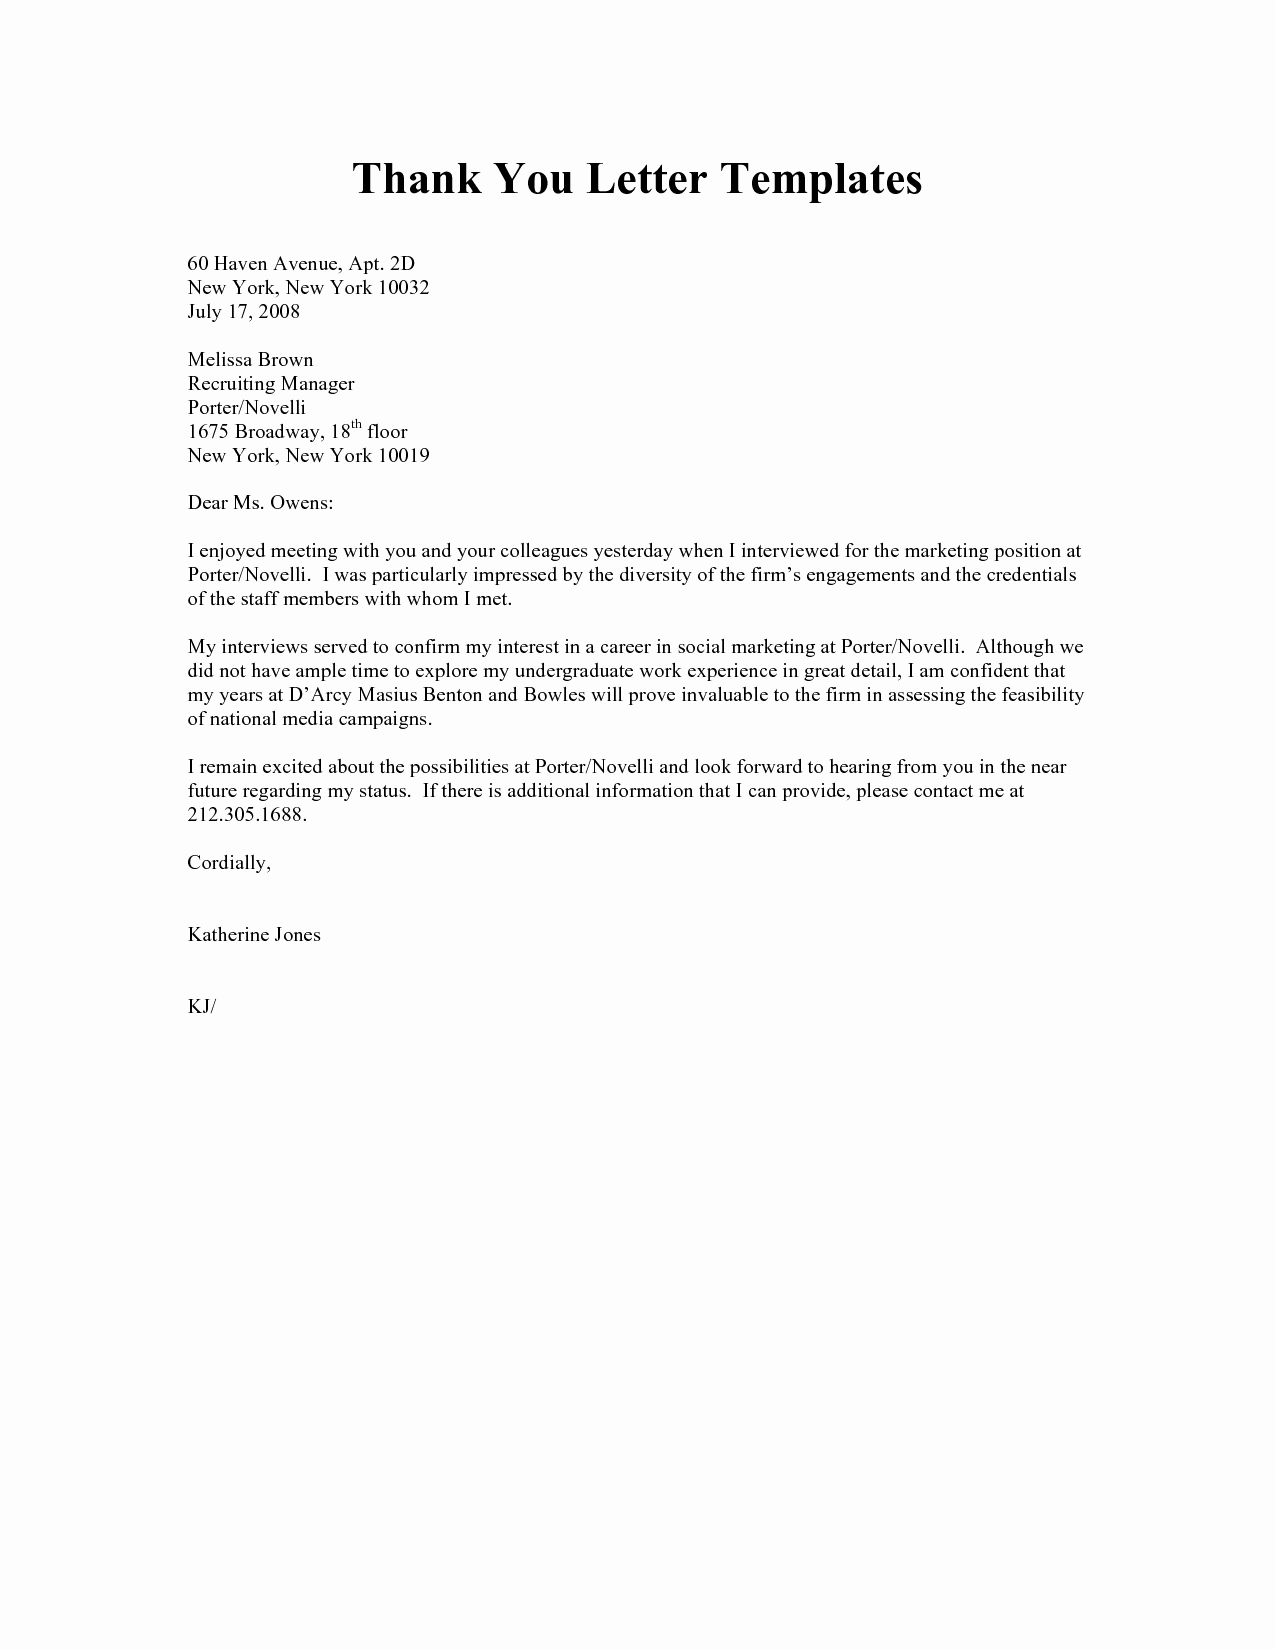 Thank You Letter Business Template Best Of Best S Of Personal Thank You Letter Templates